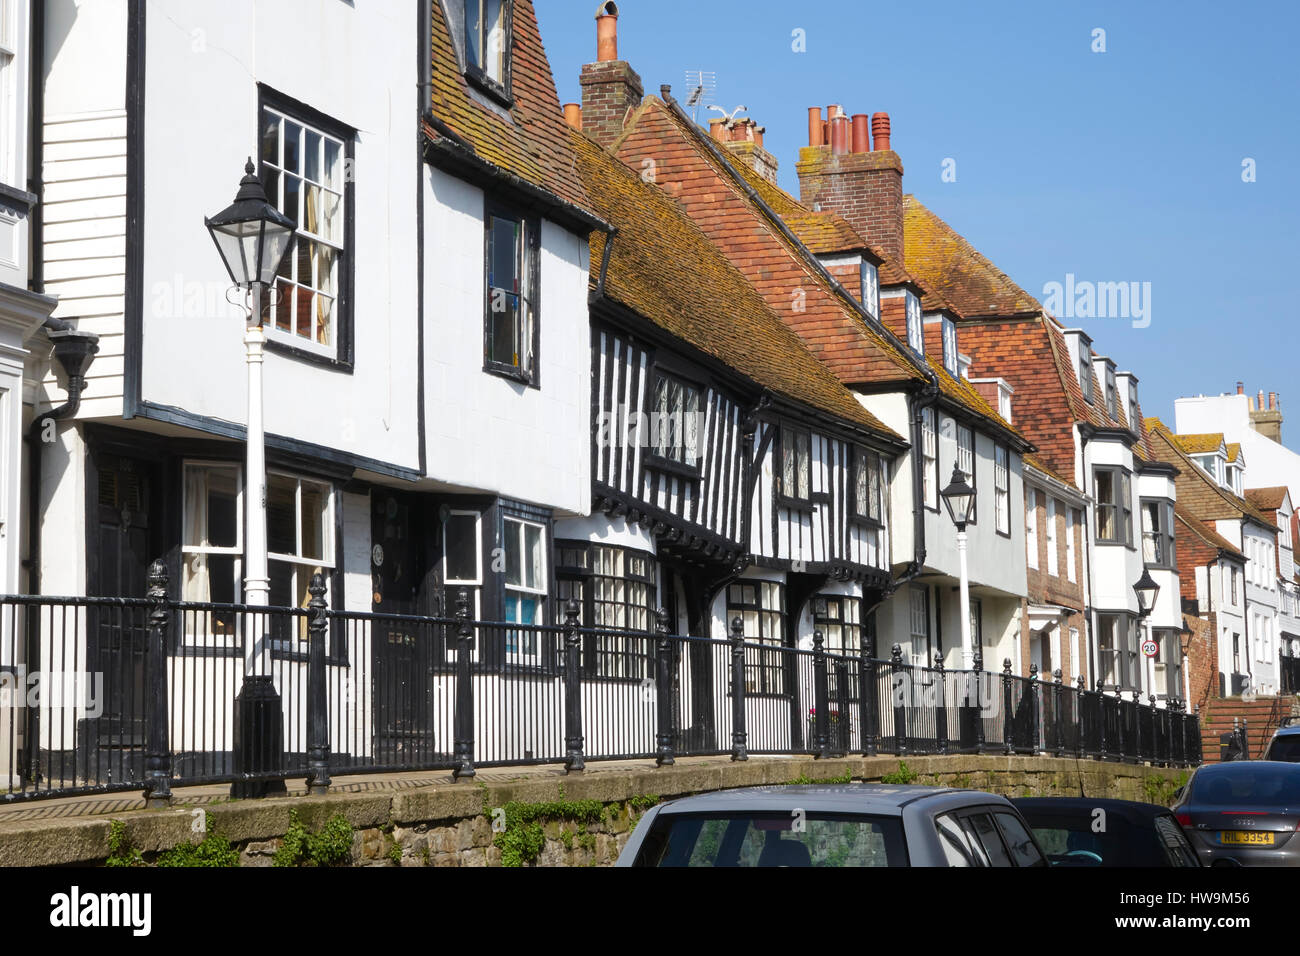 Hastings High Street, Hastings Old Town, half timbered houses on the raised pavement, East Sussex, England, Britain, - Stock Image